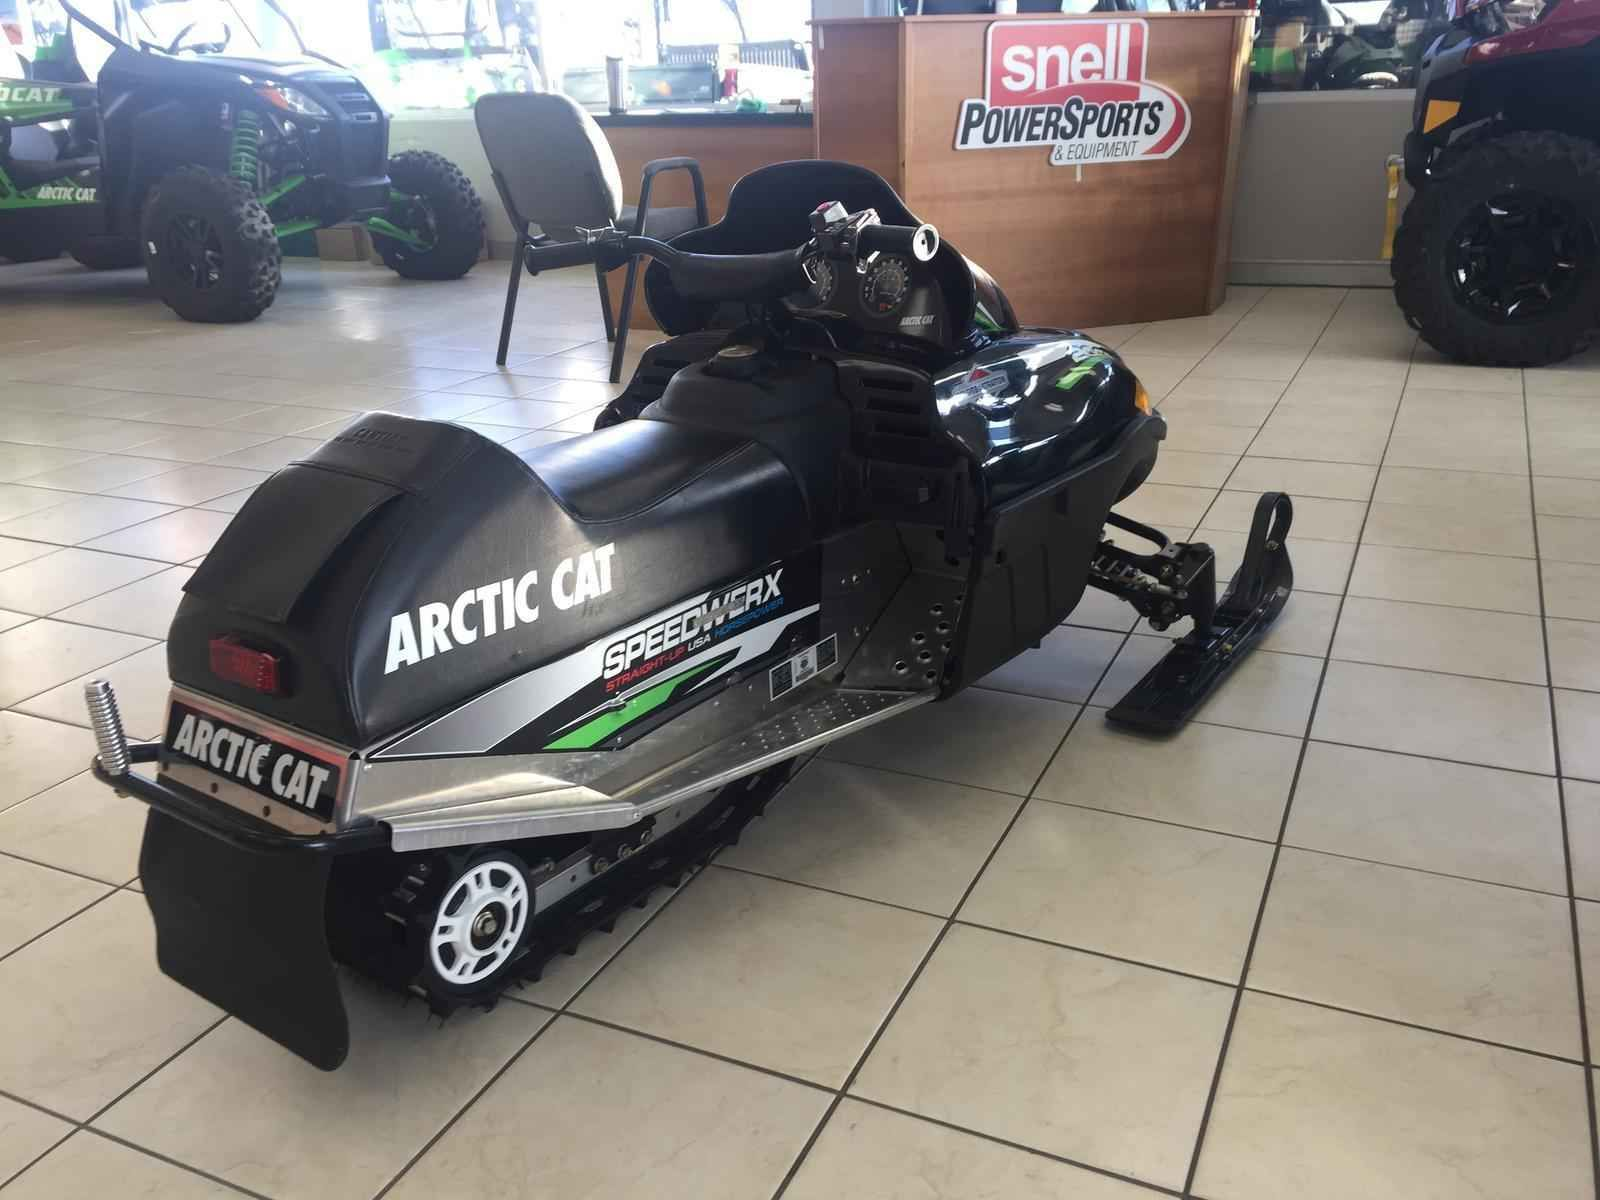 New 2015 Arctic Cat ZR 120 Snowmobile For Sale in